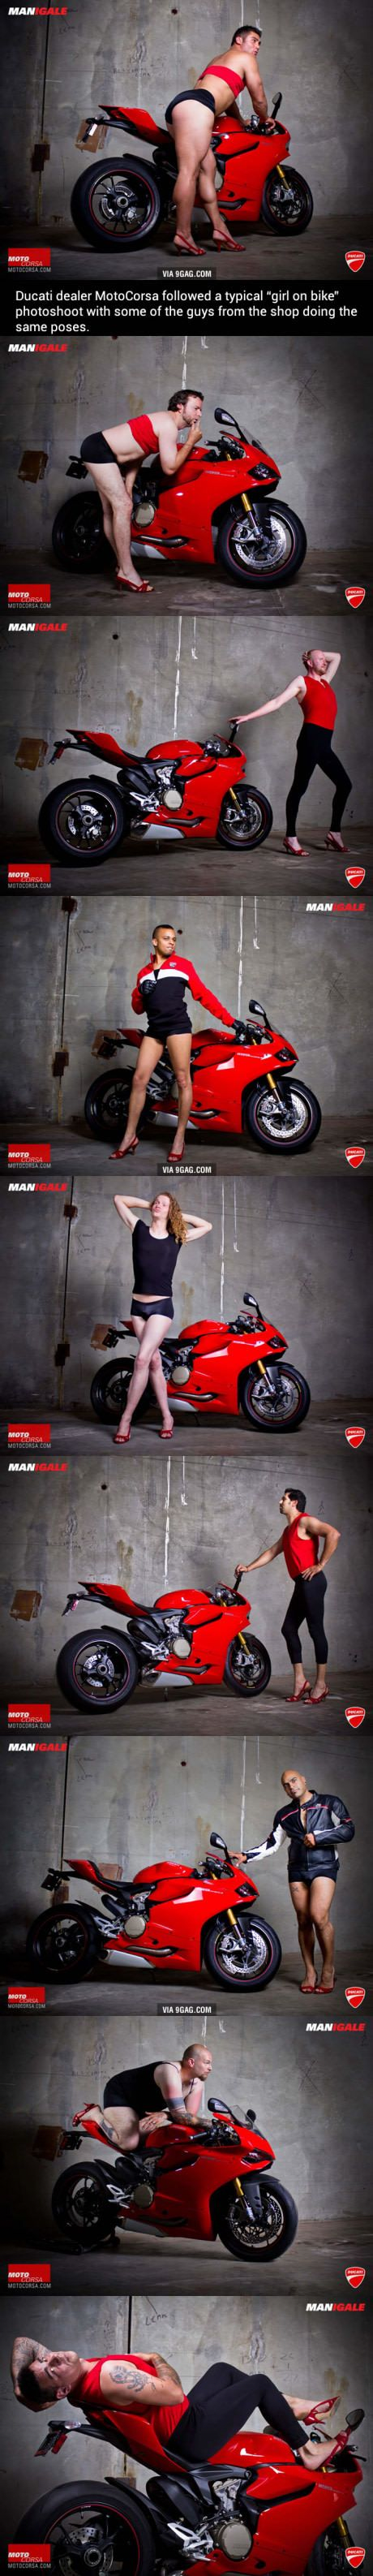 "Ducati dealer MotoCorsa followed a typical ""girl on bike"" photoshoot with guys"